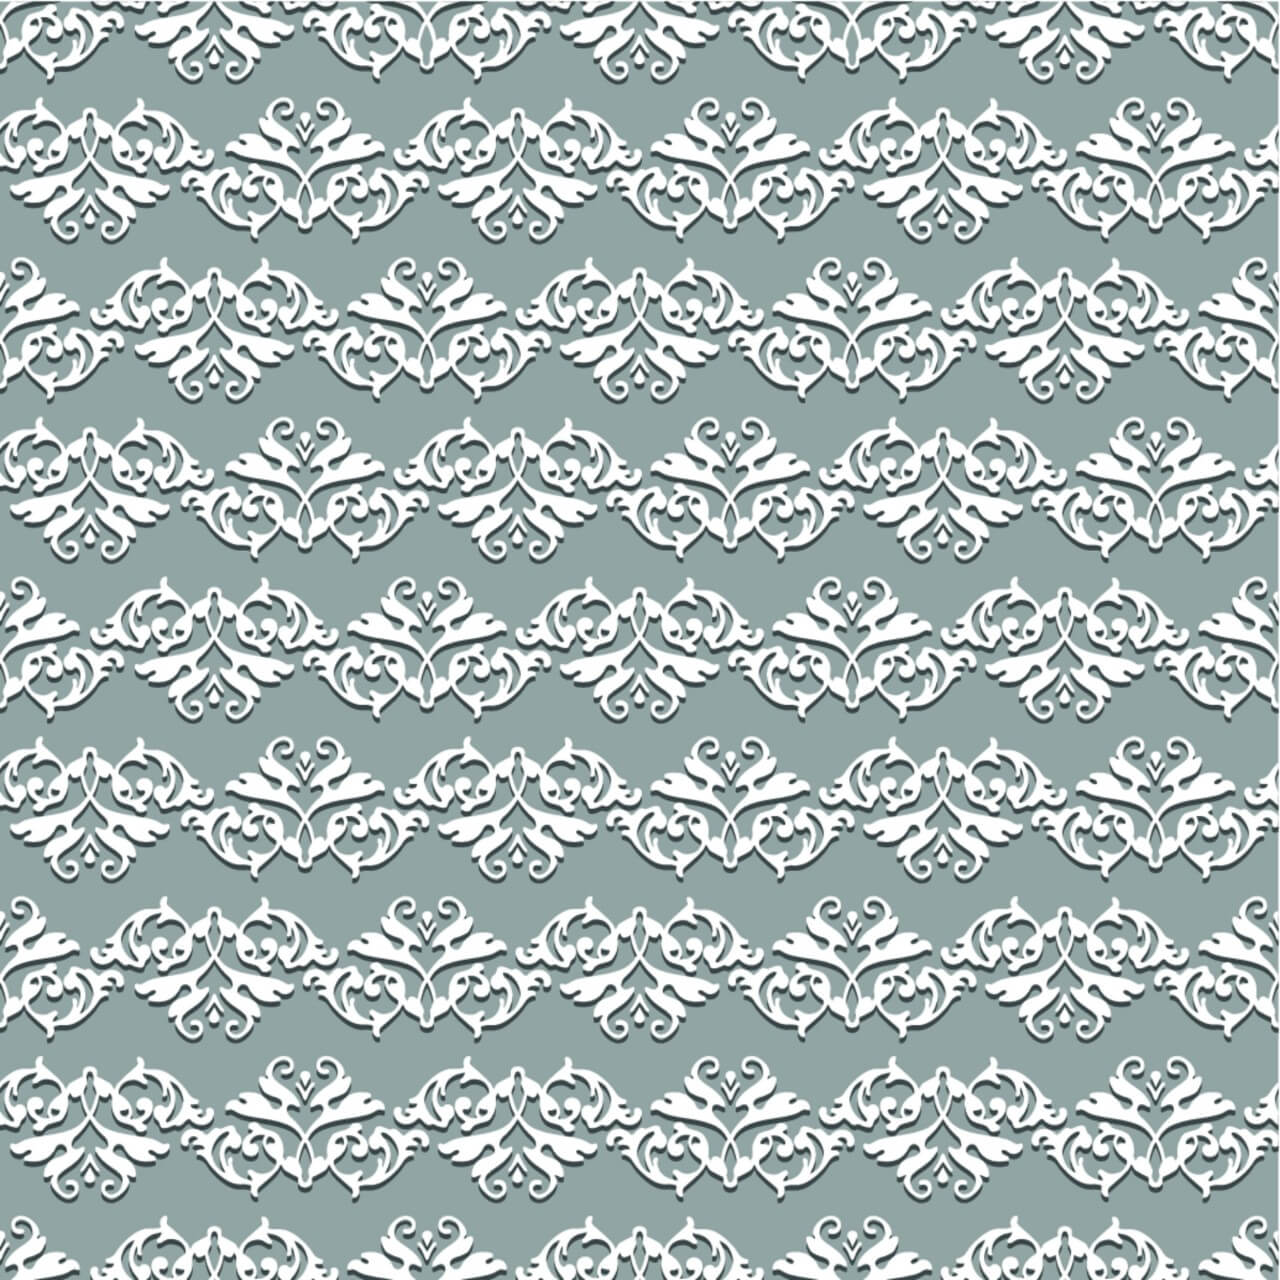 """Free vector """"Damask seamless floral pattern"""""""